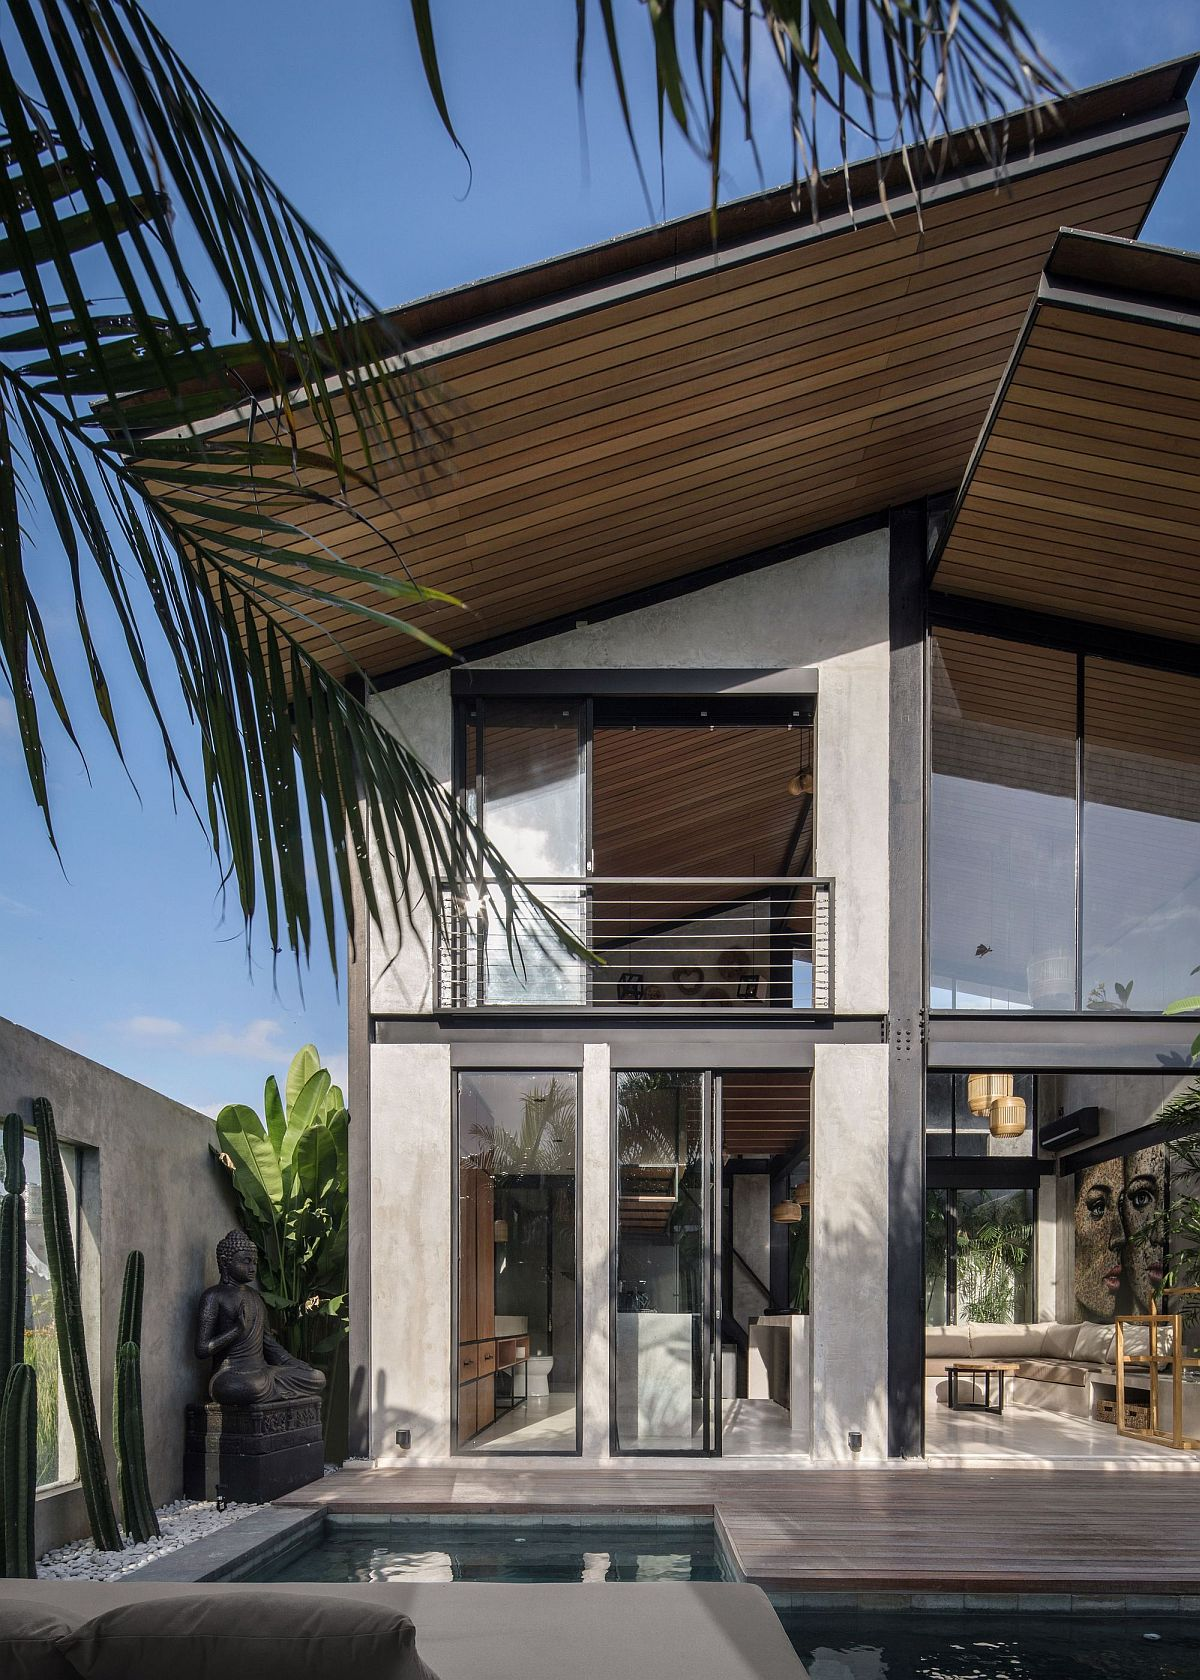 Water-greenery-and-filtered-sunlight-bring-balance-to-the-modern-home-27678